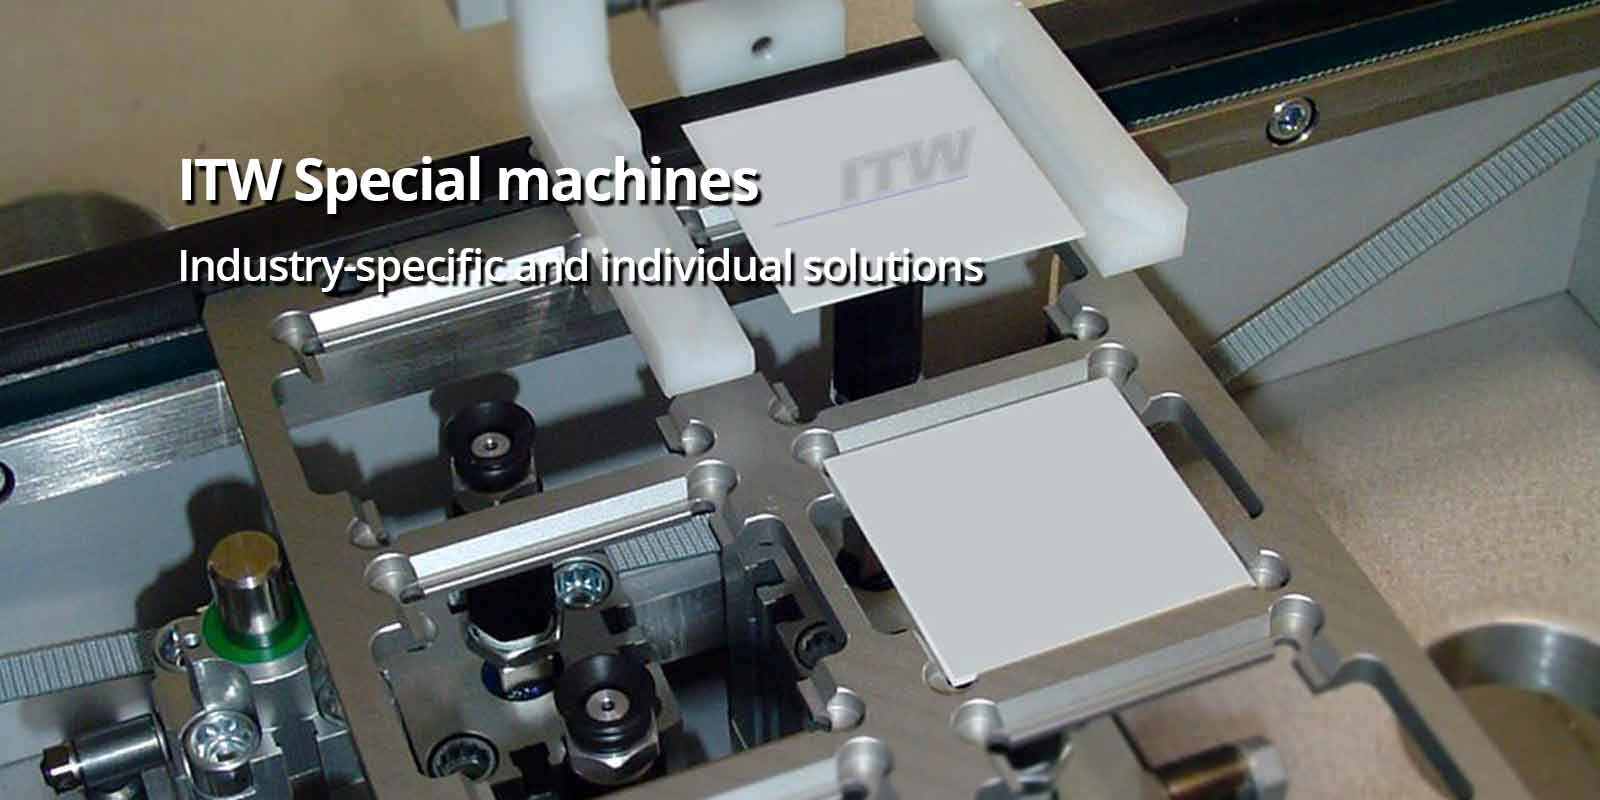 ITW Special machines Industry-specific and individual solutions